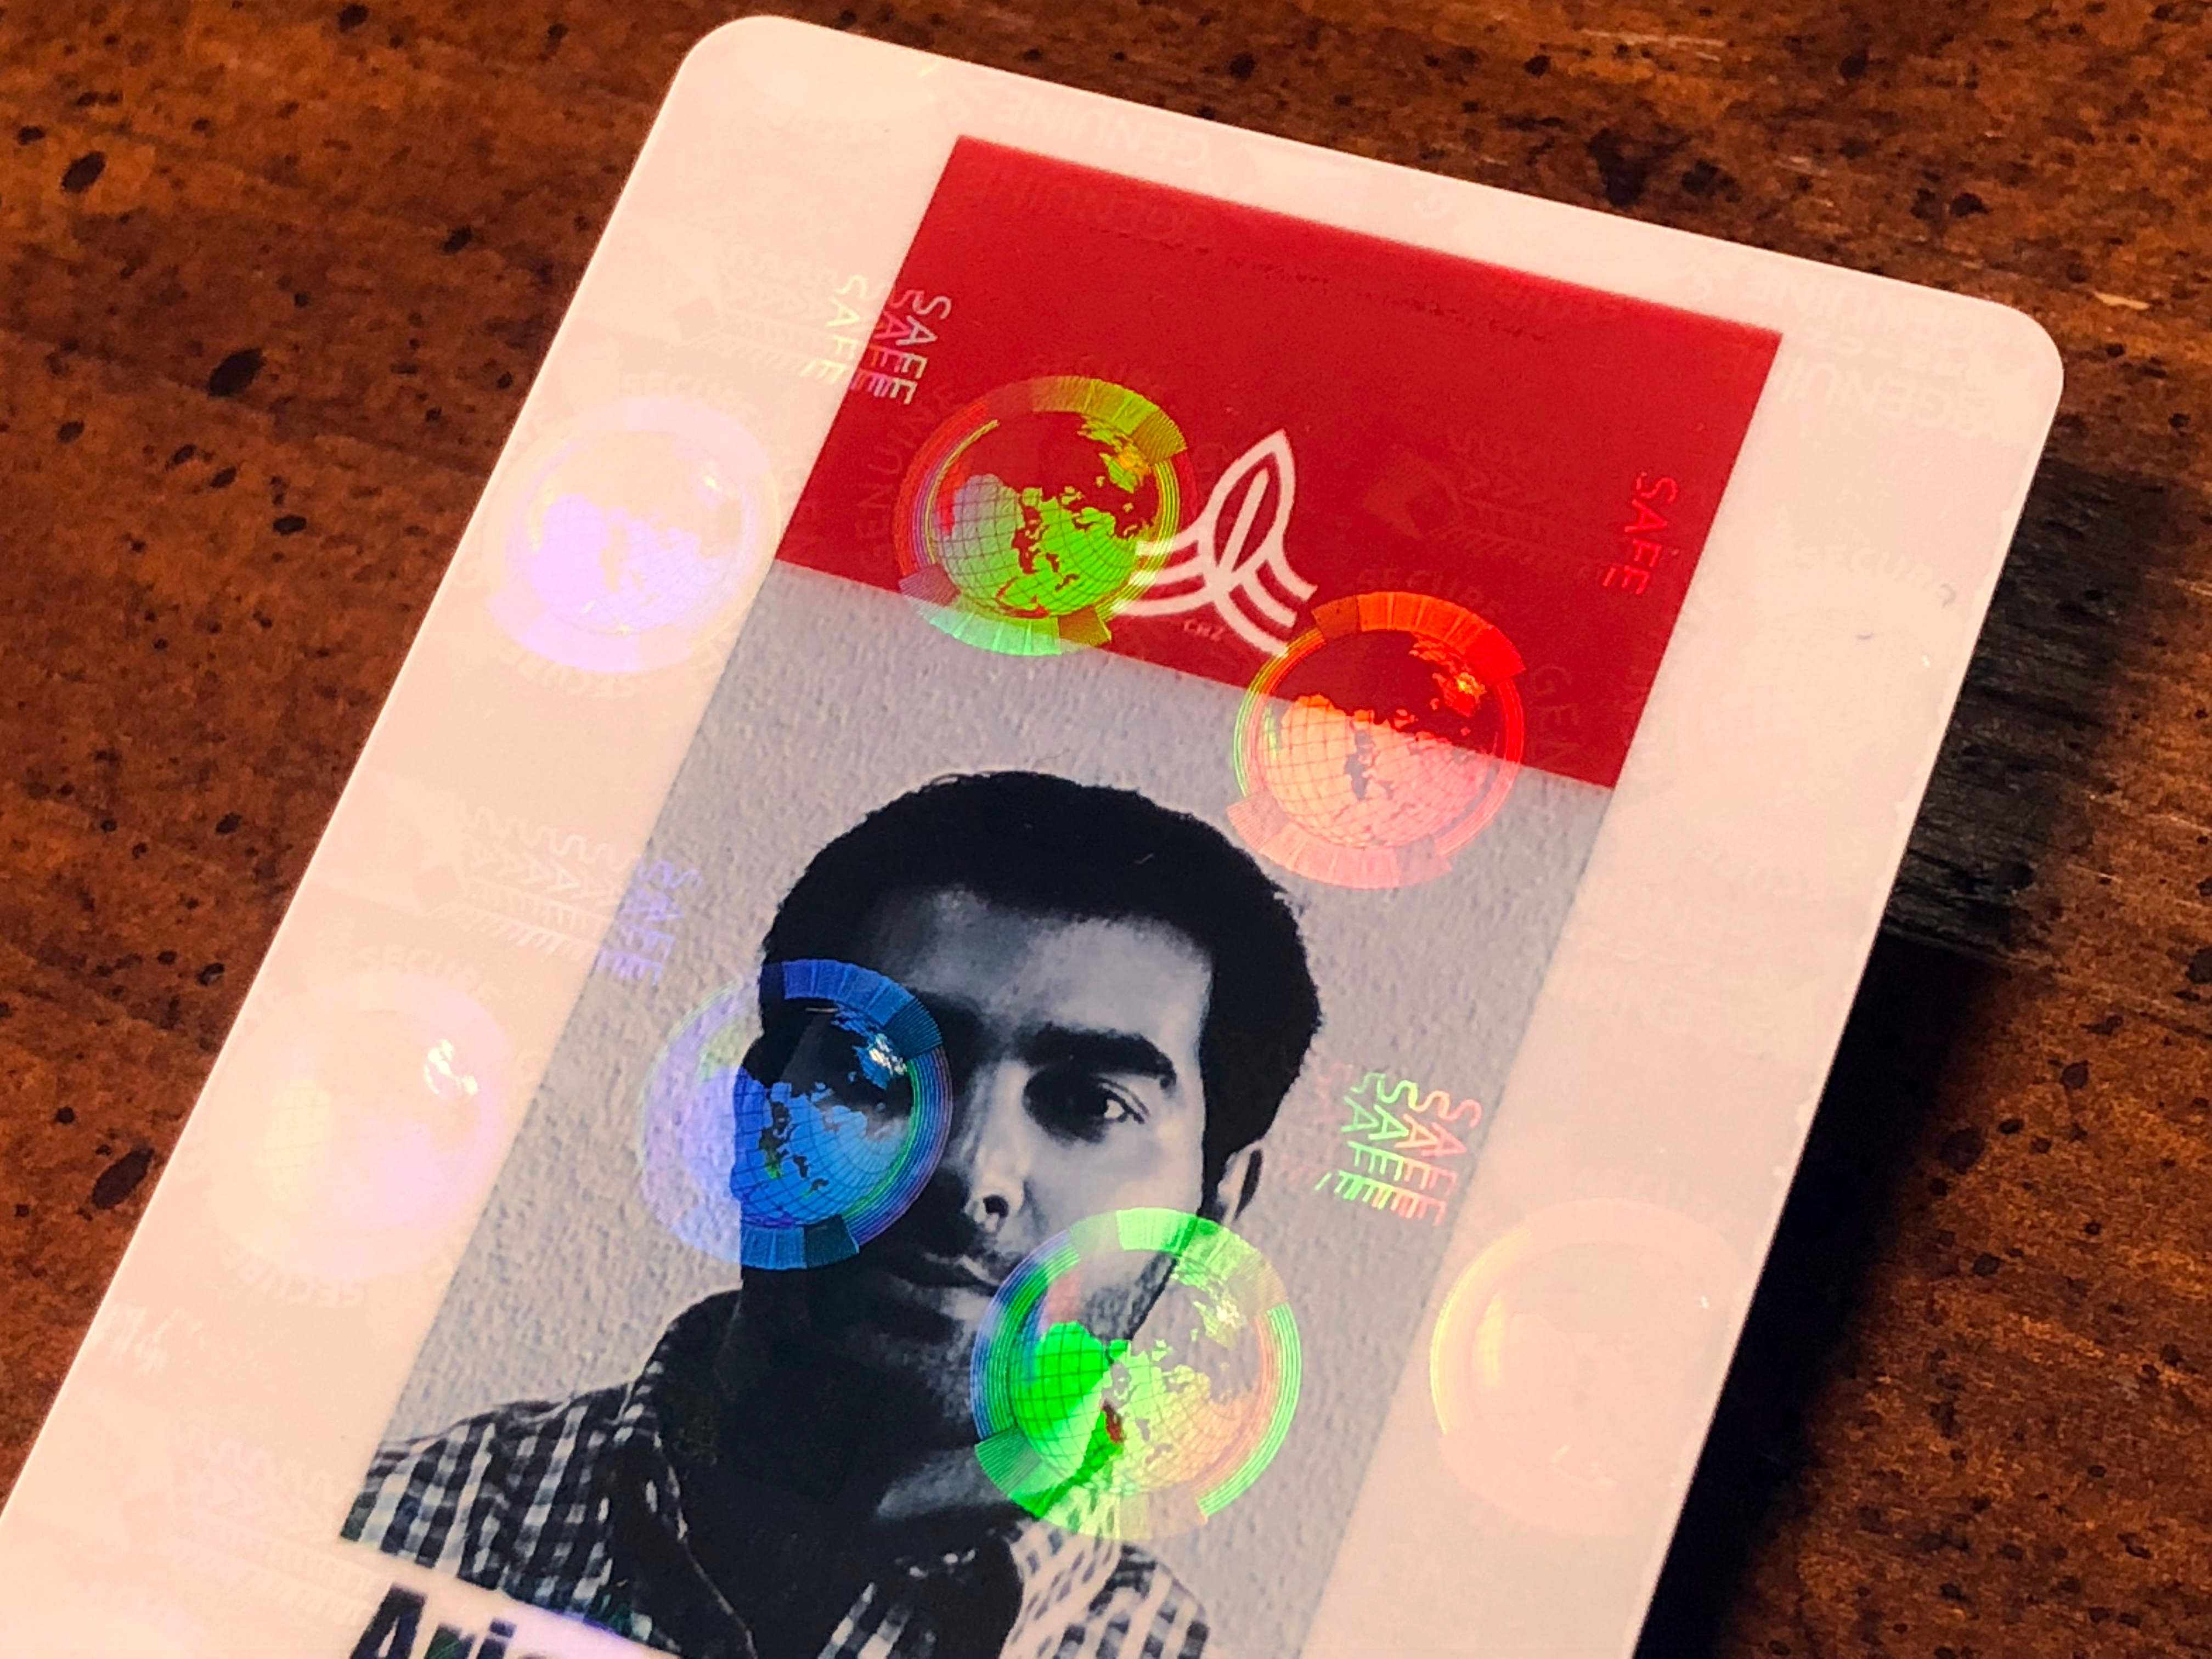 ID Badge Security Features: Hologram, Foil Stamping and Watermarking